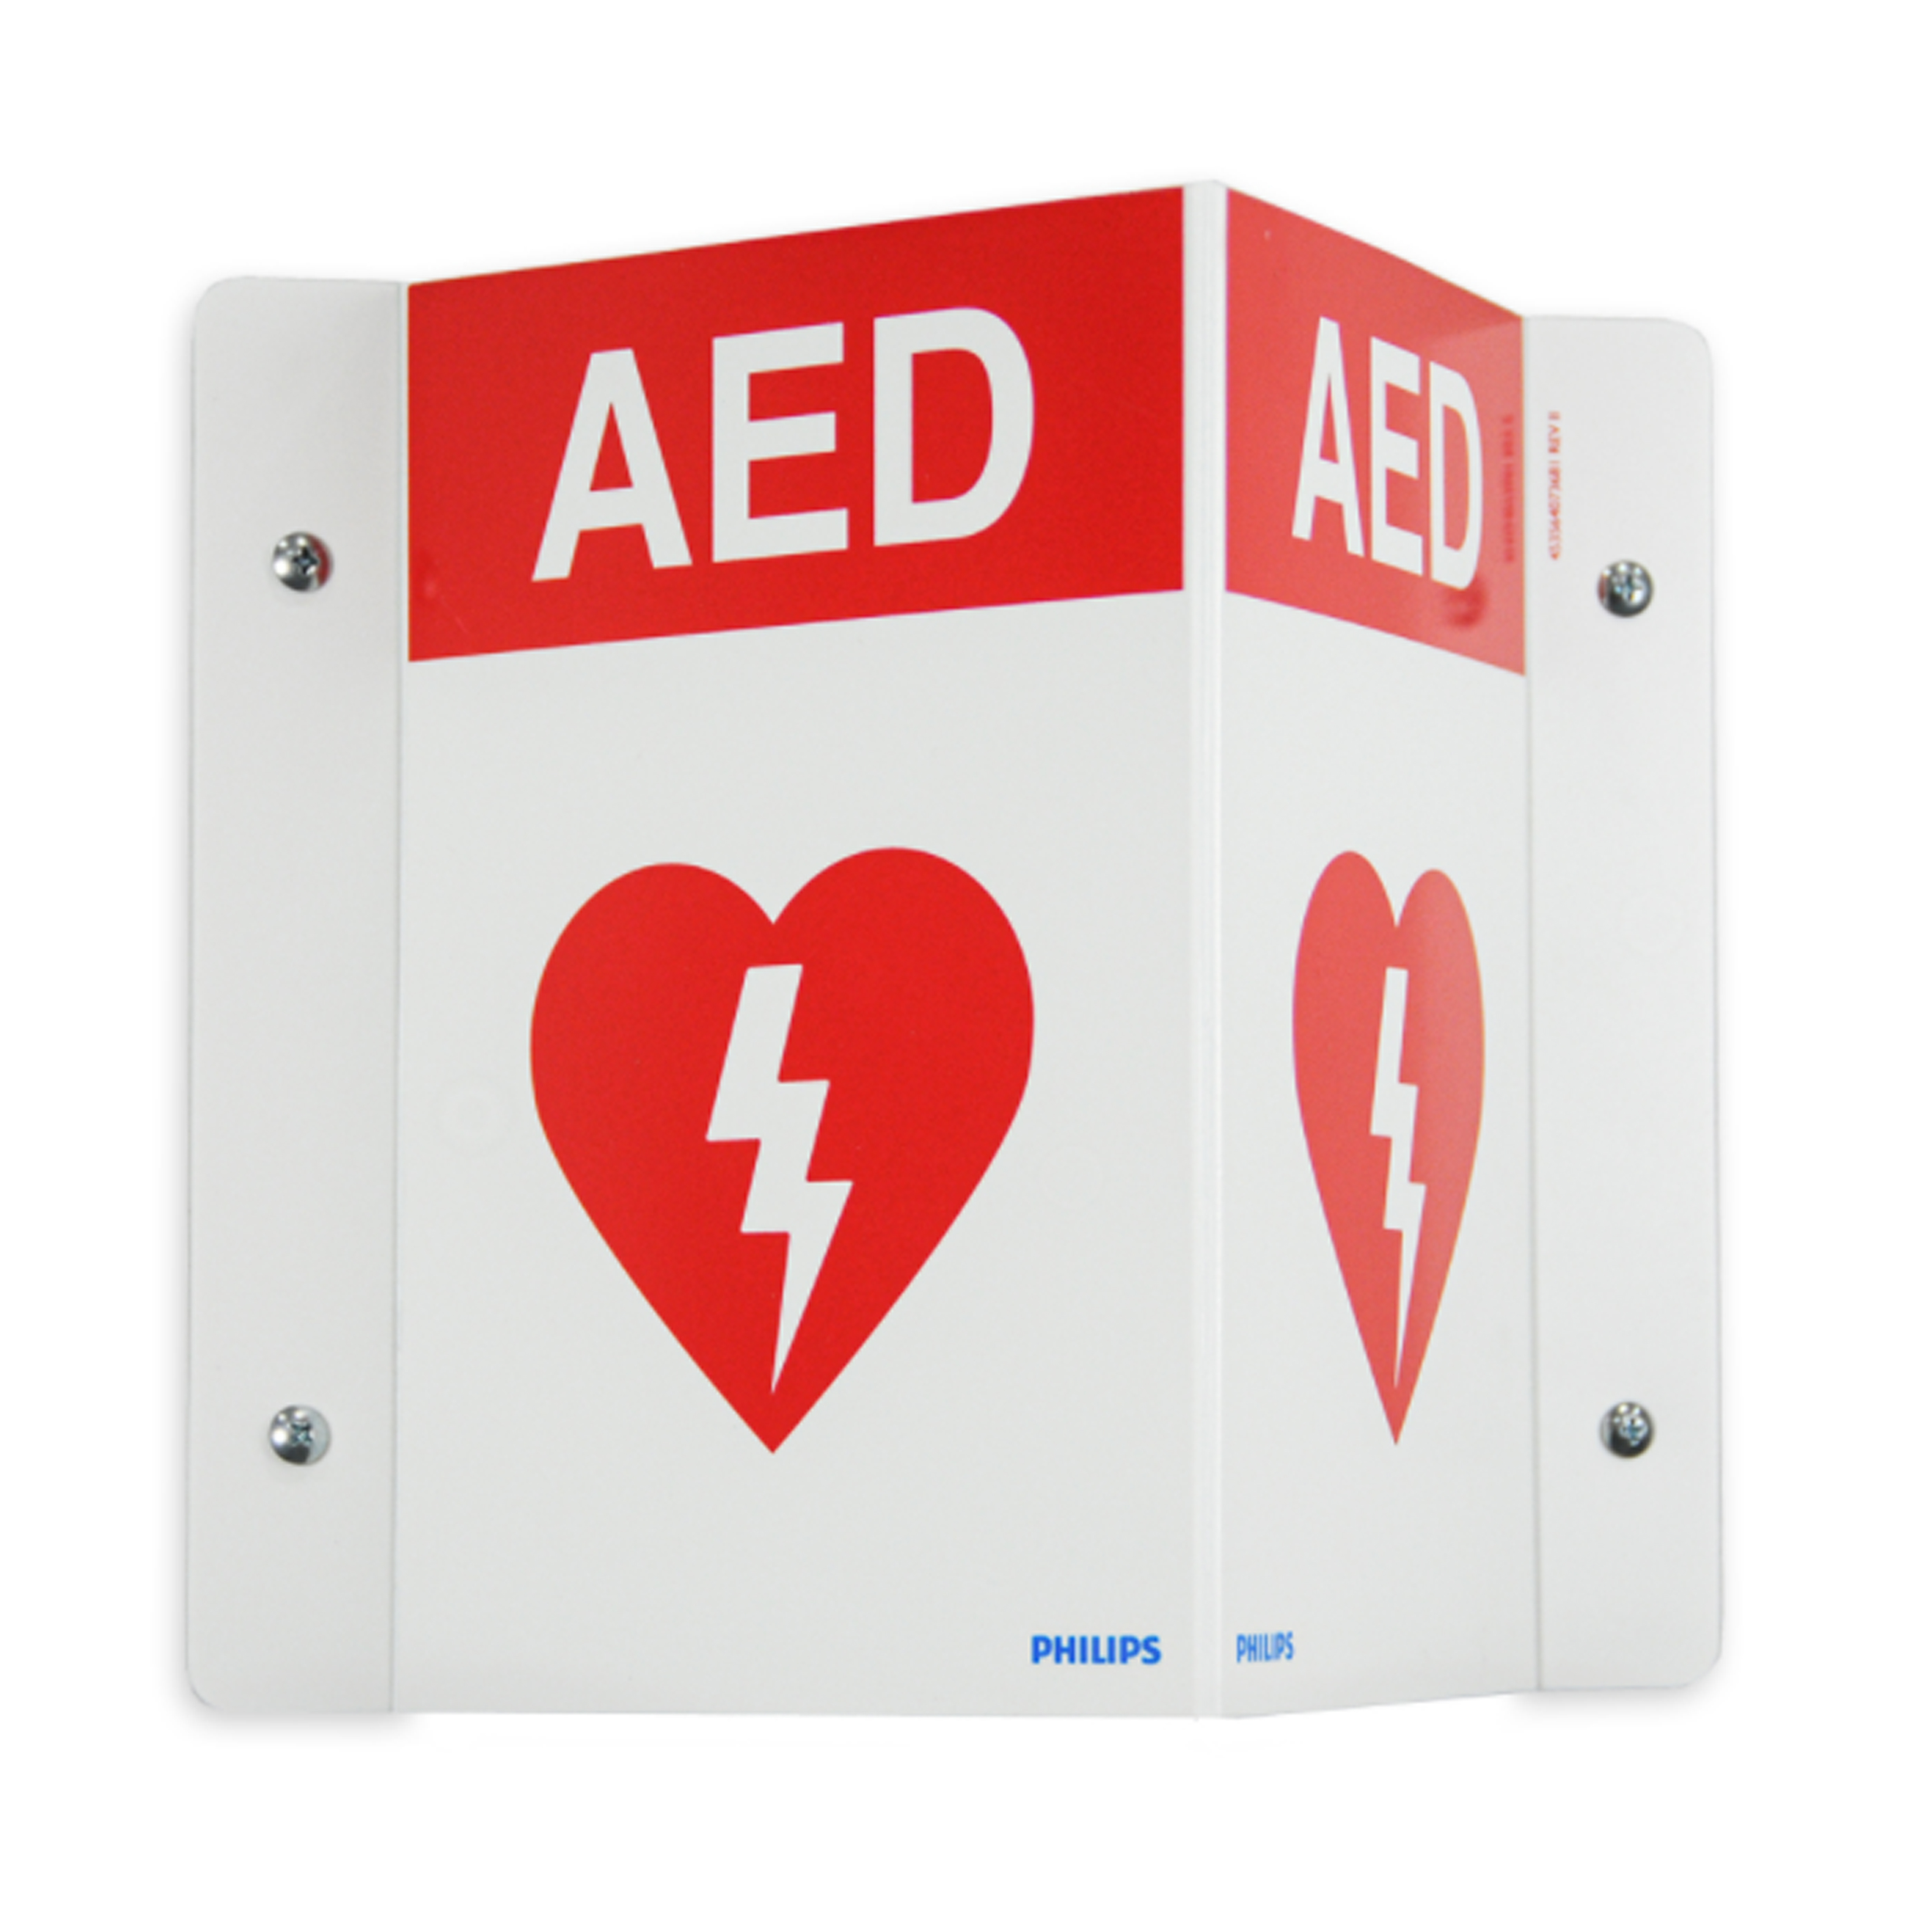 Philips AED Wall Sign - Red 989803170921 in Michigan USA